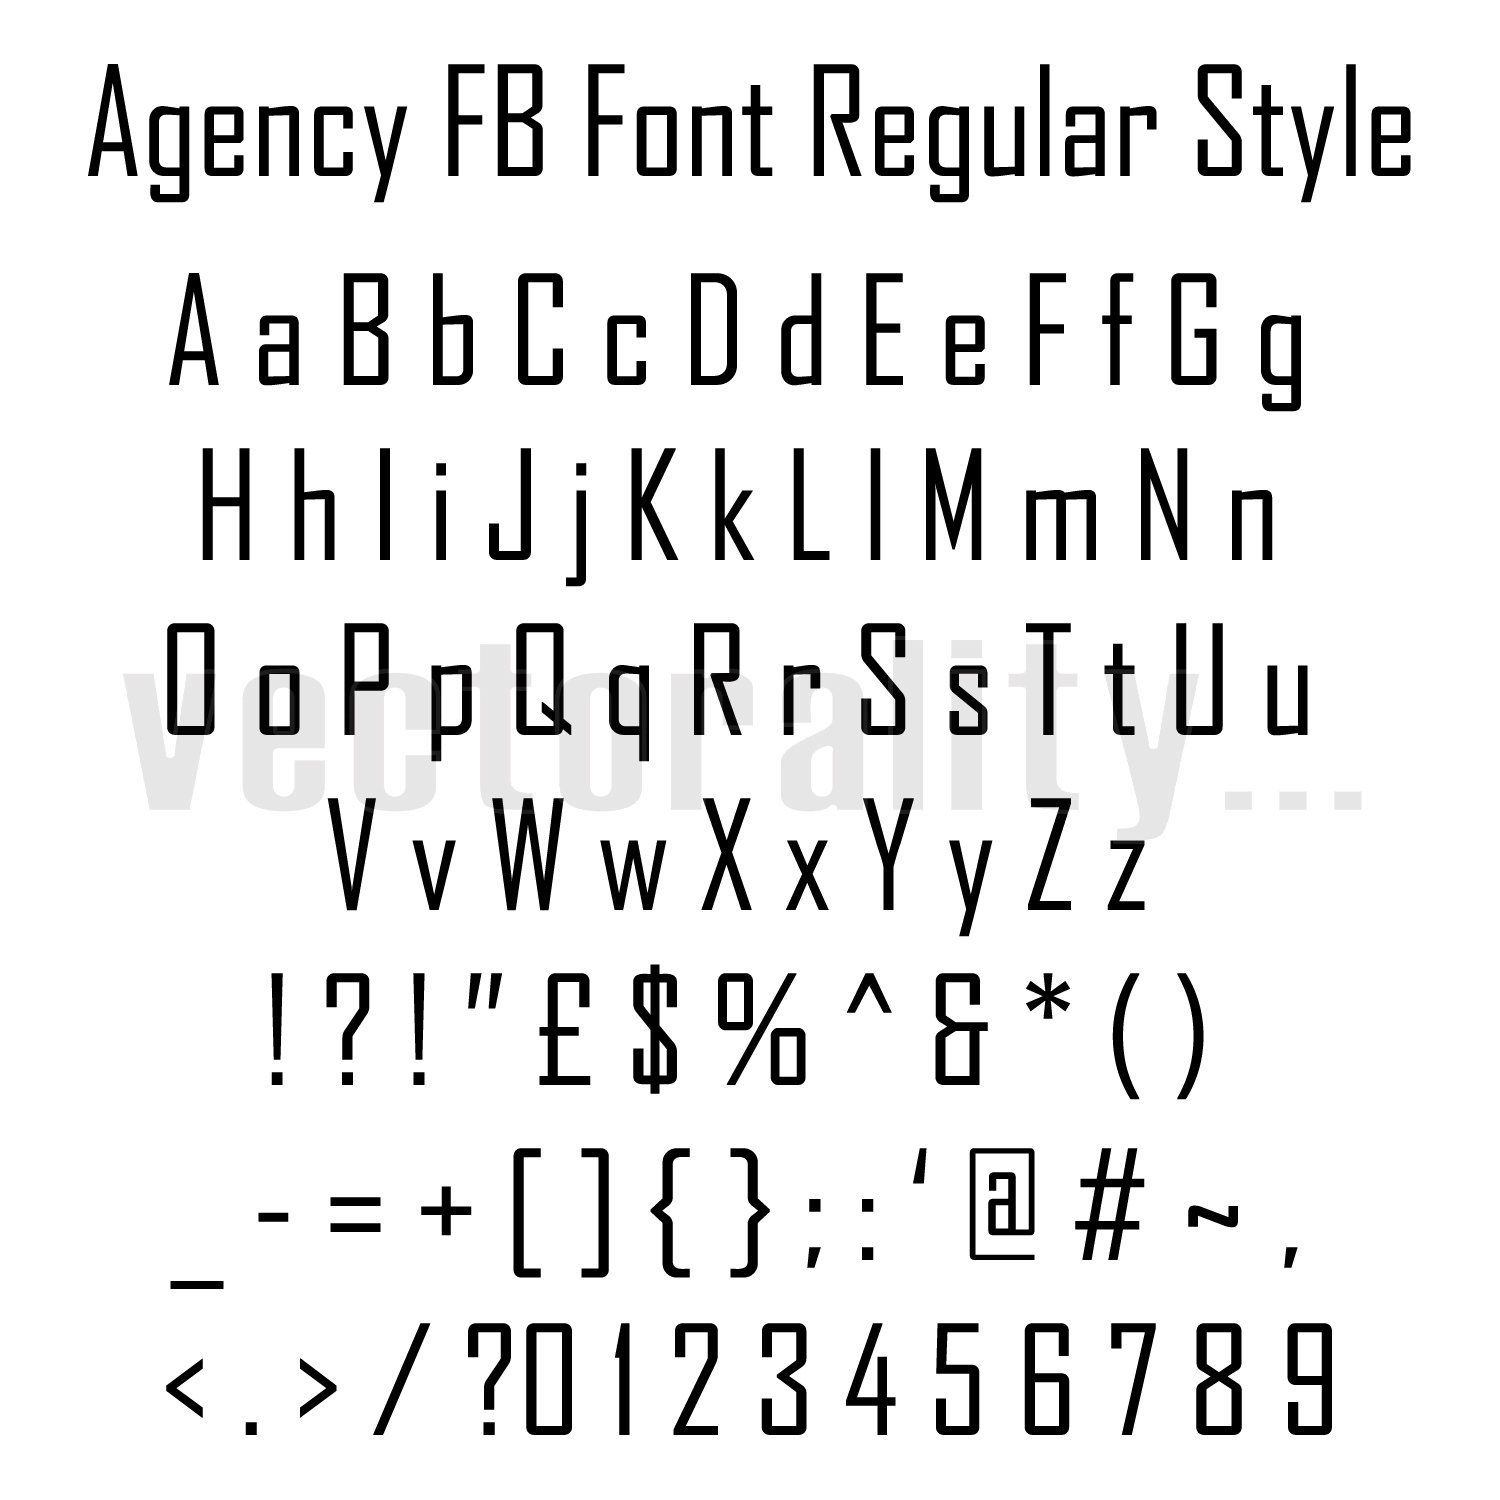 Agency Fb Font Regular Style Alphabet Numbers Letters Vector Etsy Letter Vector Writing Words Alphabet And Numbers